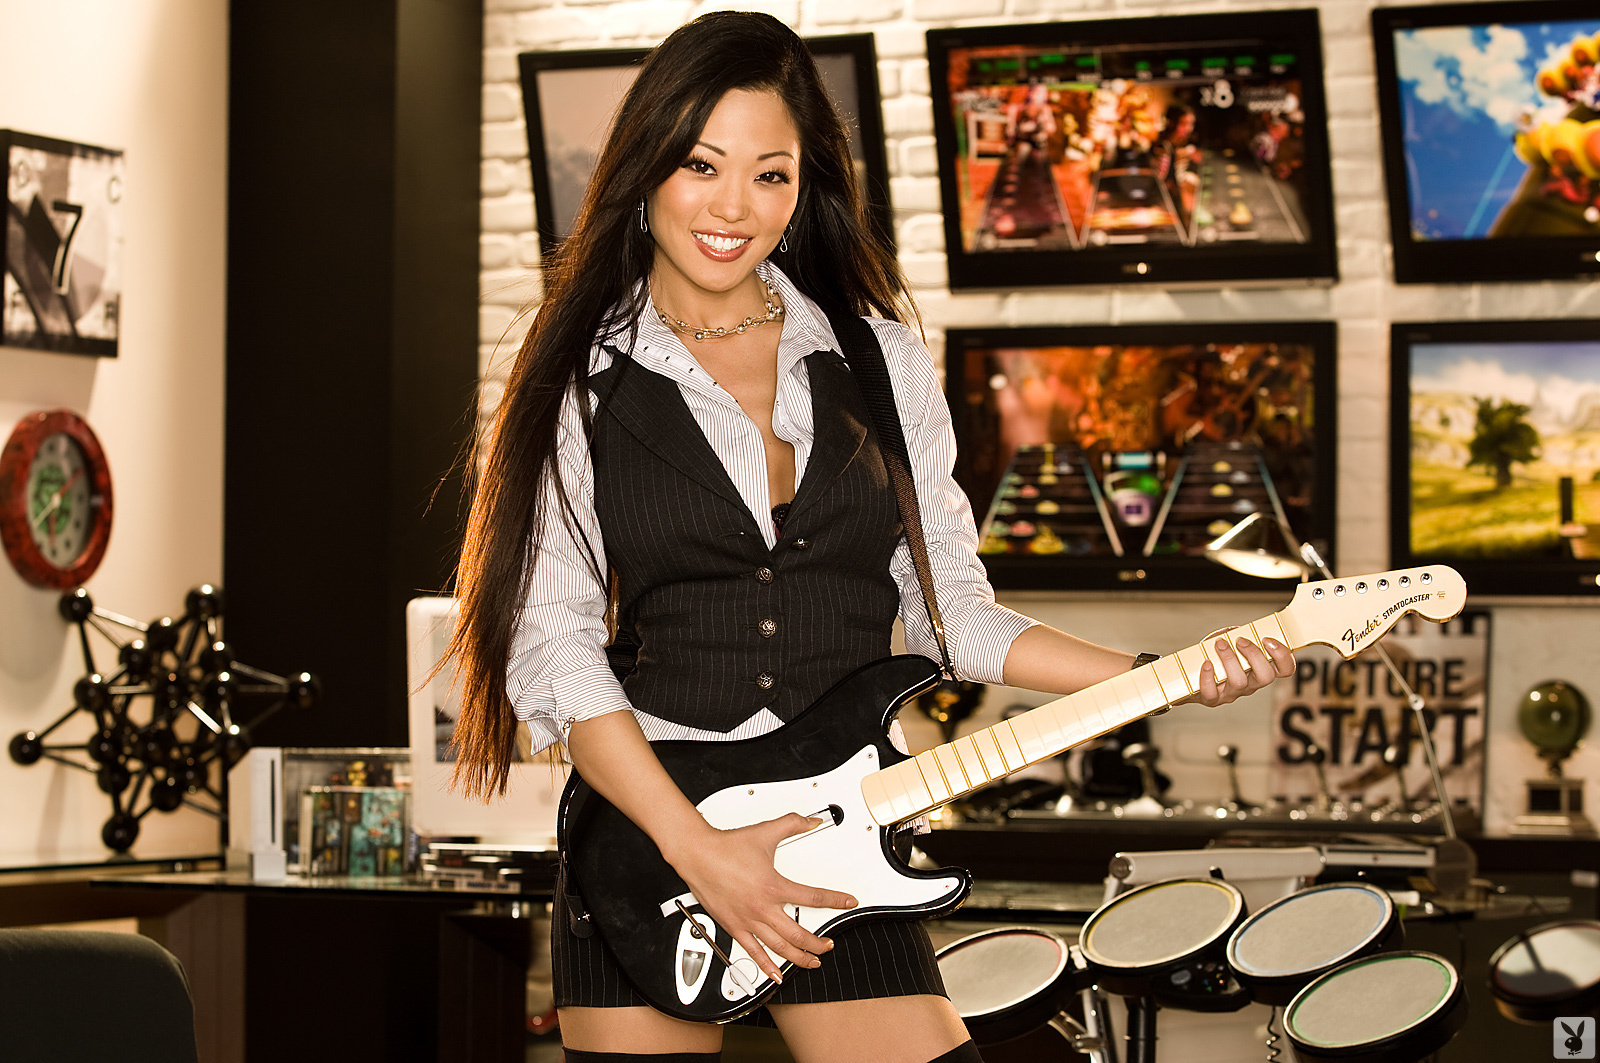 grace-kim-guitar-stockings-naked-asian-playboy-02